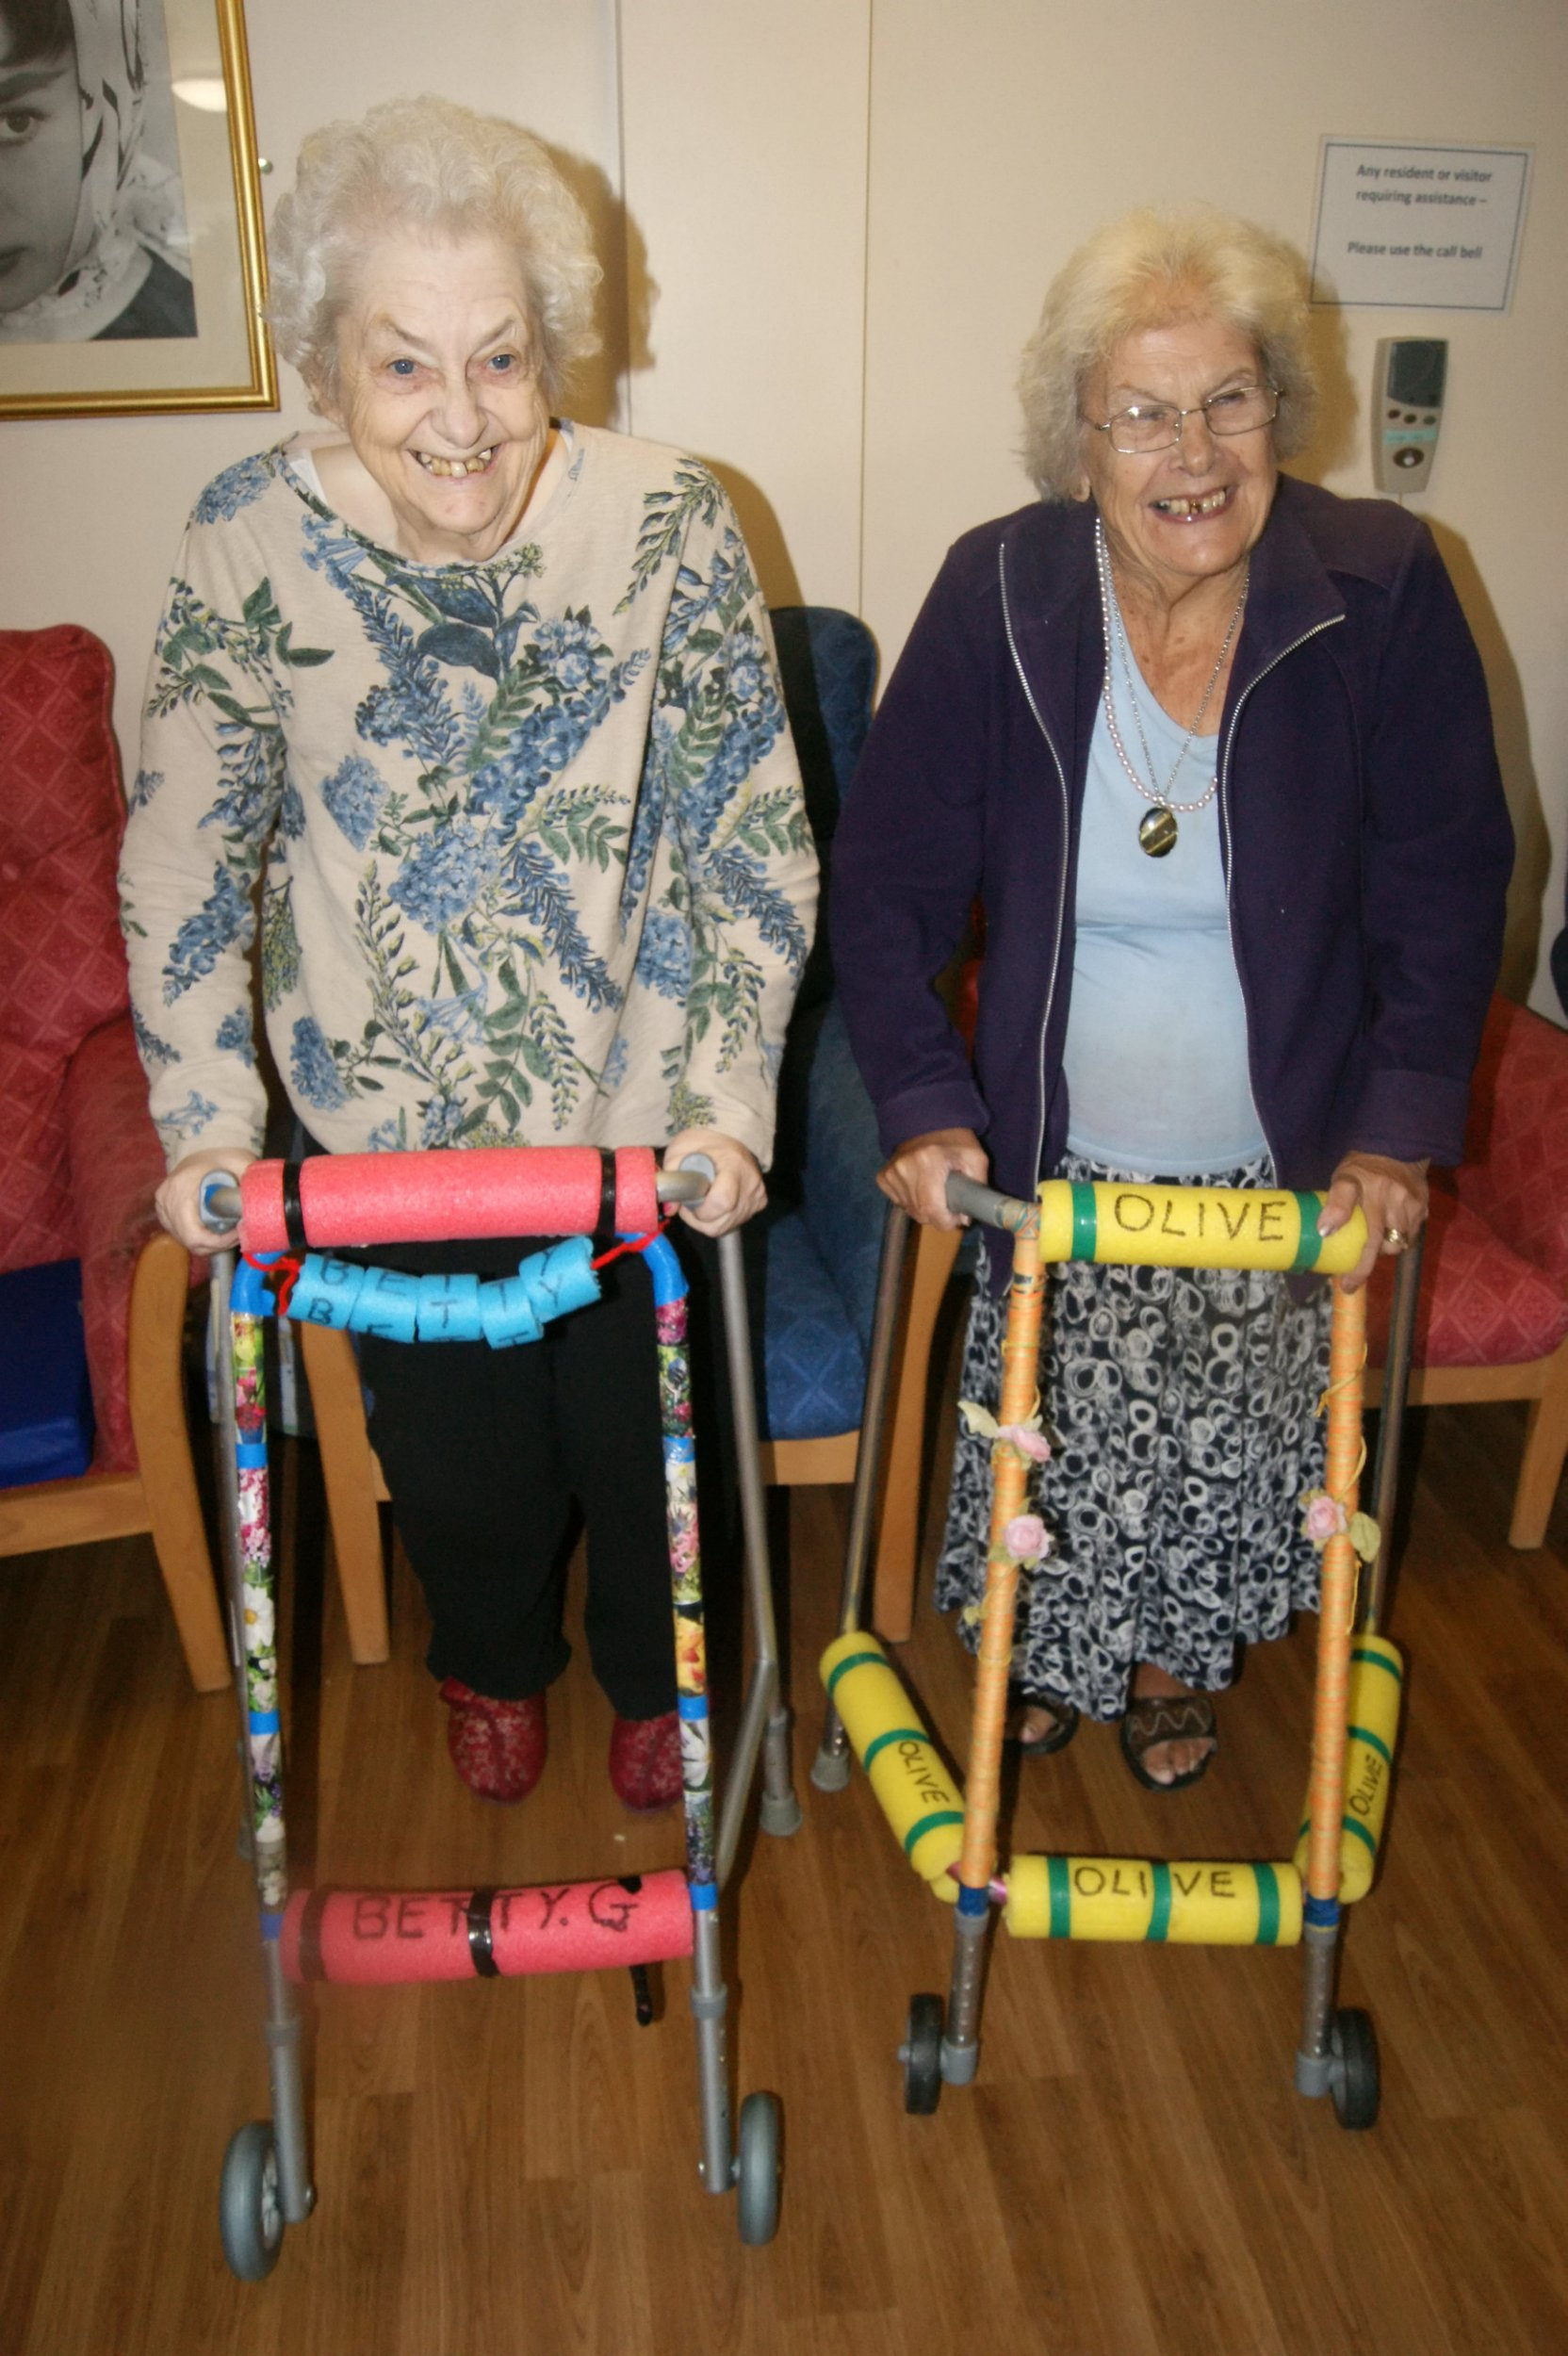 """Betty Gilvary, 80, (L) & Olive Fenner, 81, (R) with their zimmer frames. An ingenious campaign to 'pimp' pensioners' zimmerframes has led to an incredible 60 per cent reduction in falls. See MASONS story MNZIMMER. The """"Pimp My Zimmer"""" campaign was launched at several care homes in Essex a year ago by care home manager Angela Donlevy. She came up with the idea after wondering why all the frames were grey in a dream. Since then the numbers of falls at some of the homes run by Essex County Council has fallen by 60 per cent. The bright colours have proved invaluable to residents with dementia who previously struggled to recognise which frame was theirs."""